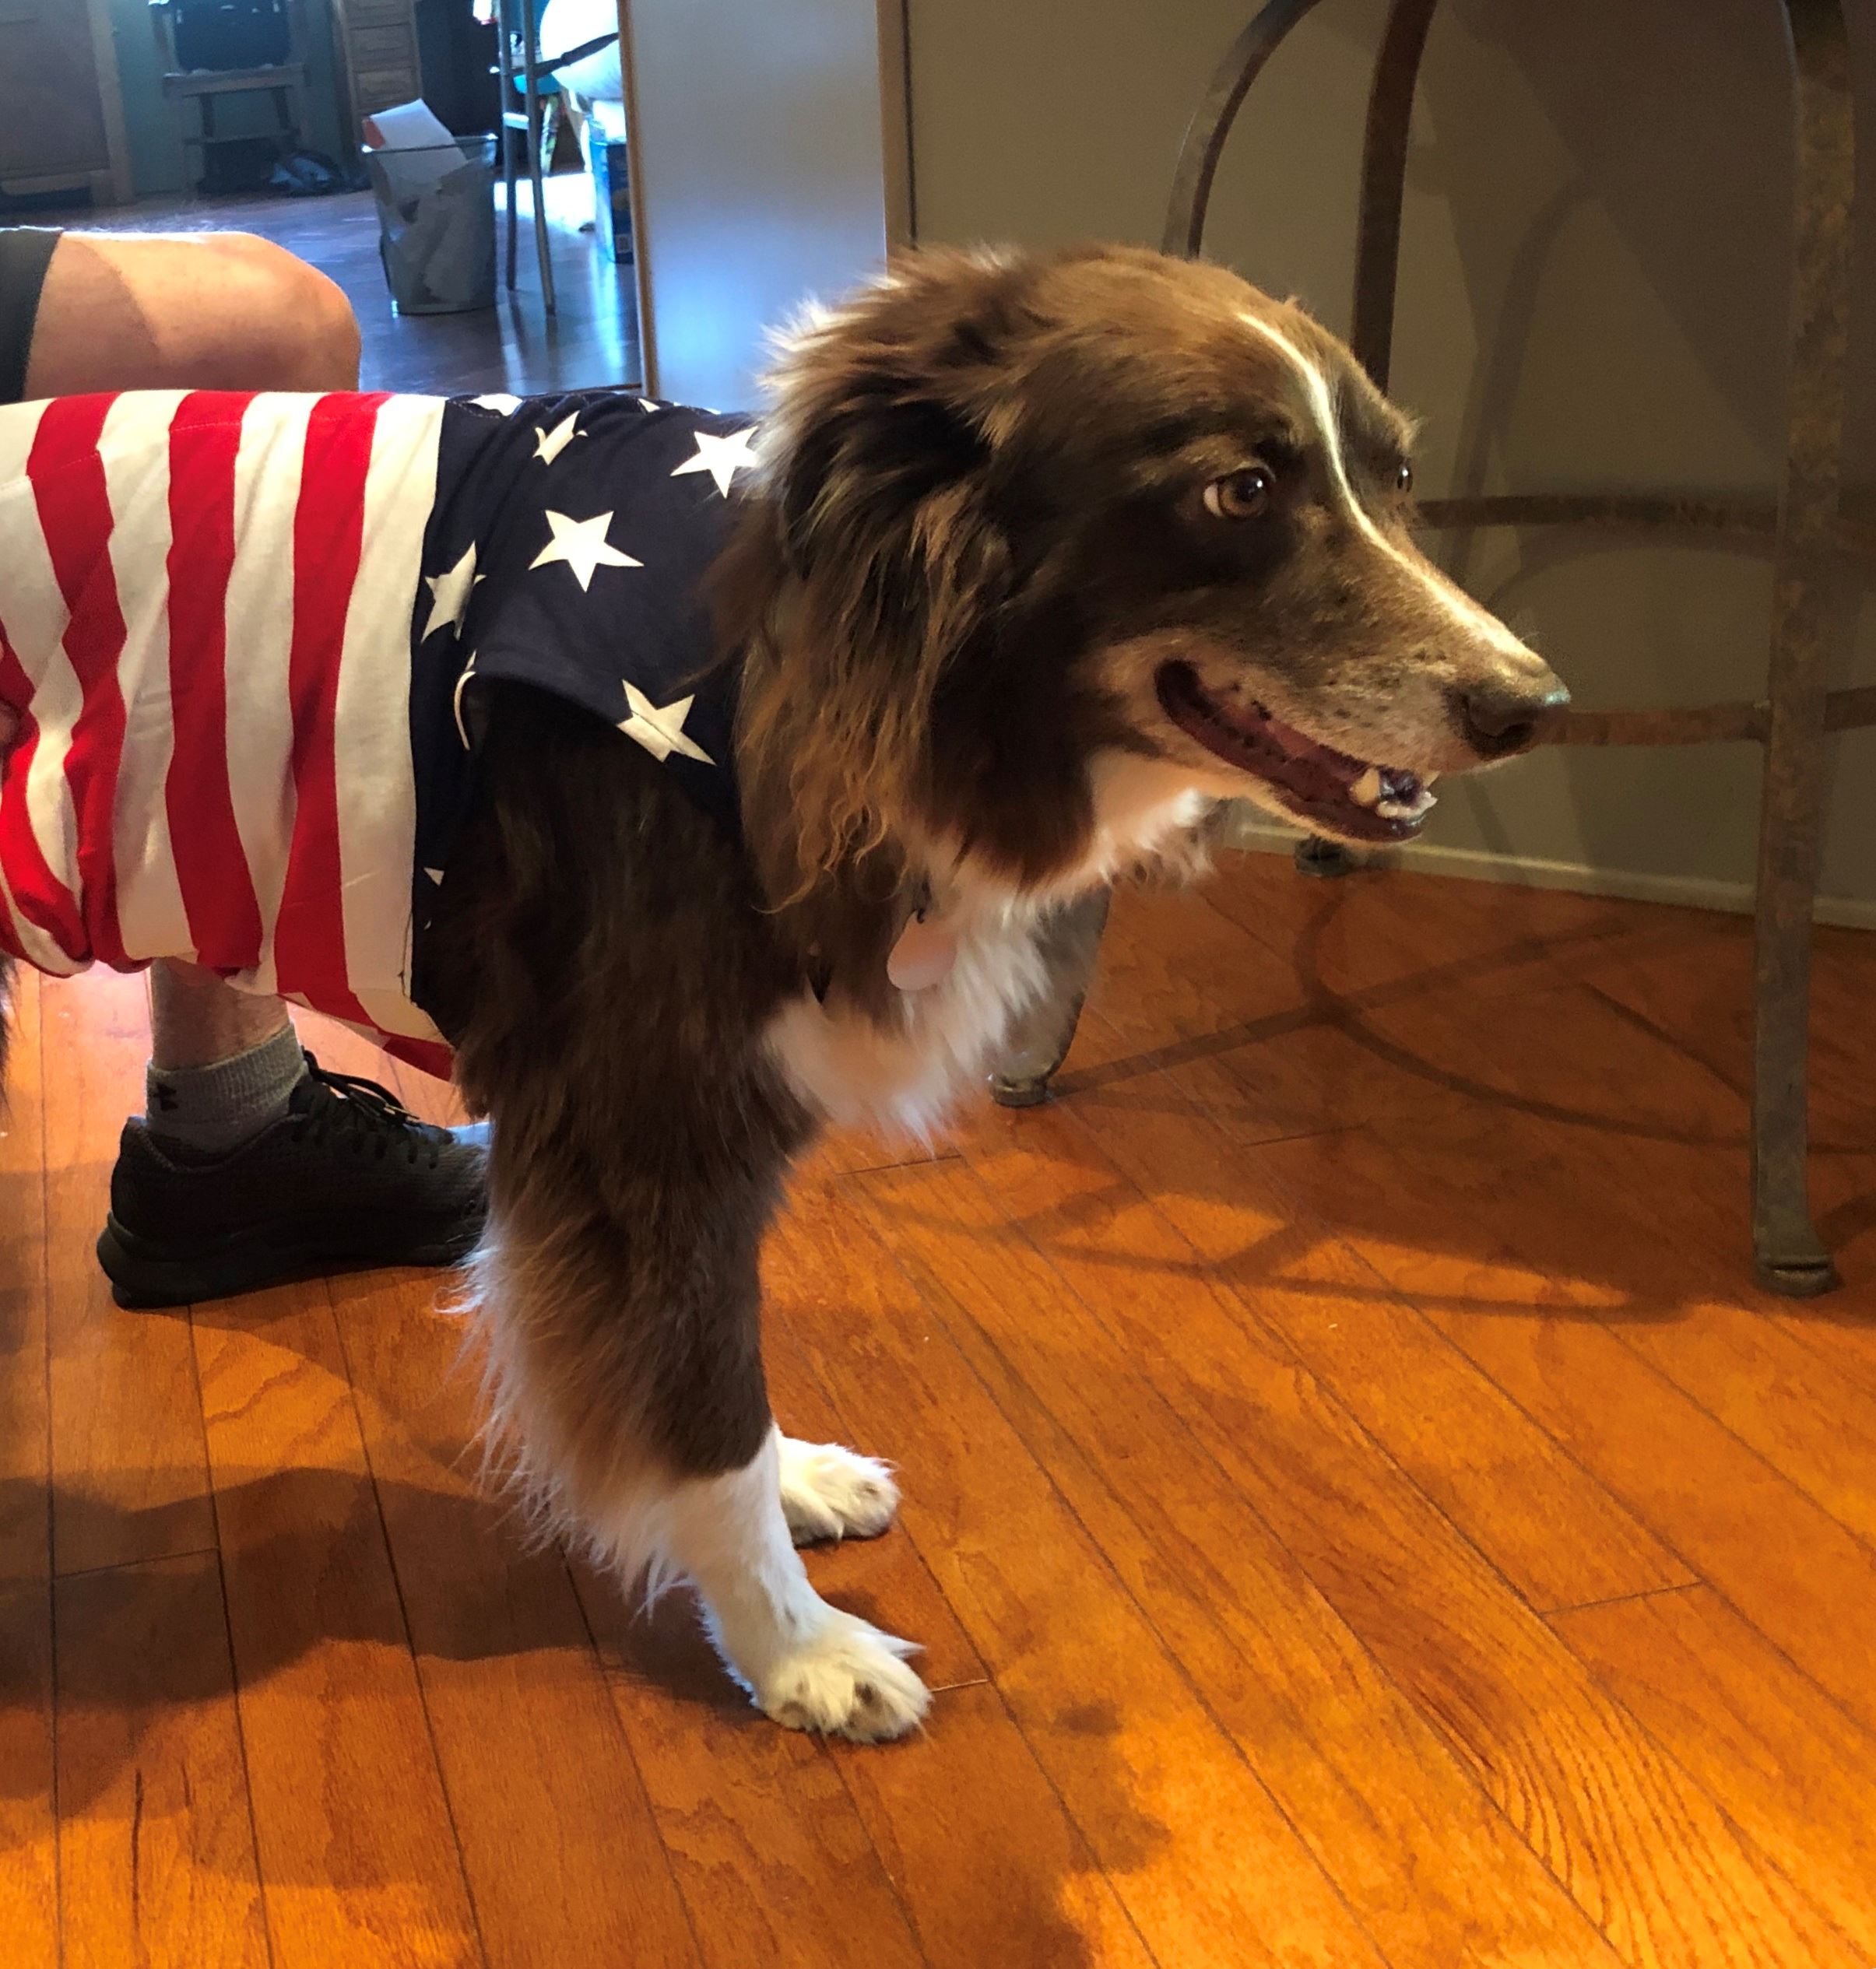 Commissioner Van Ackeren's dog Mika dressed up for the Fourth of July